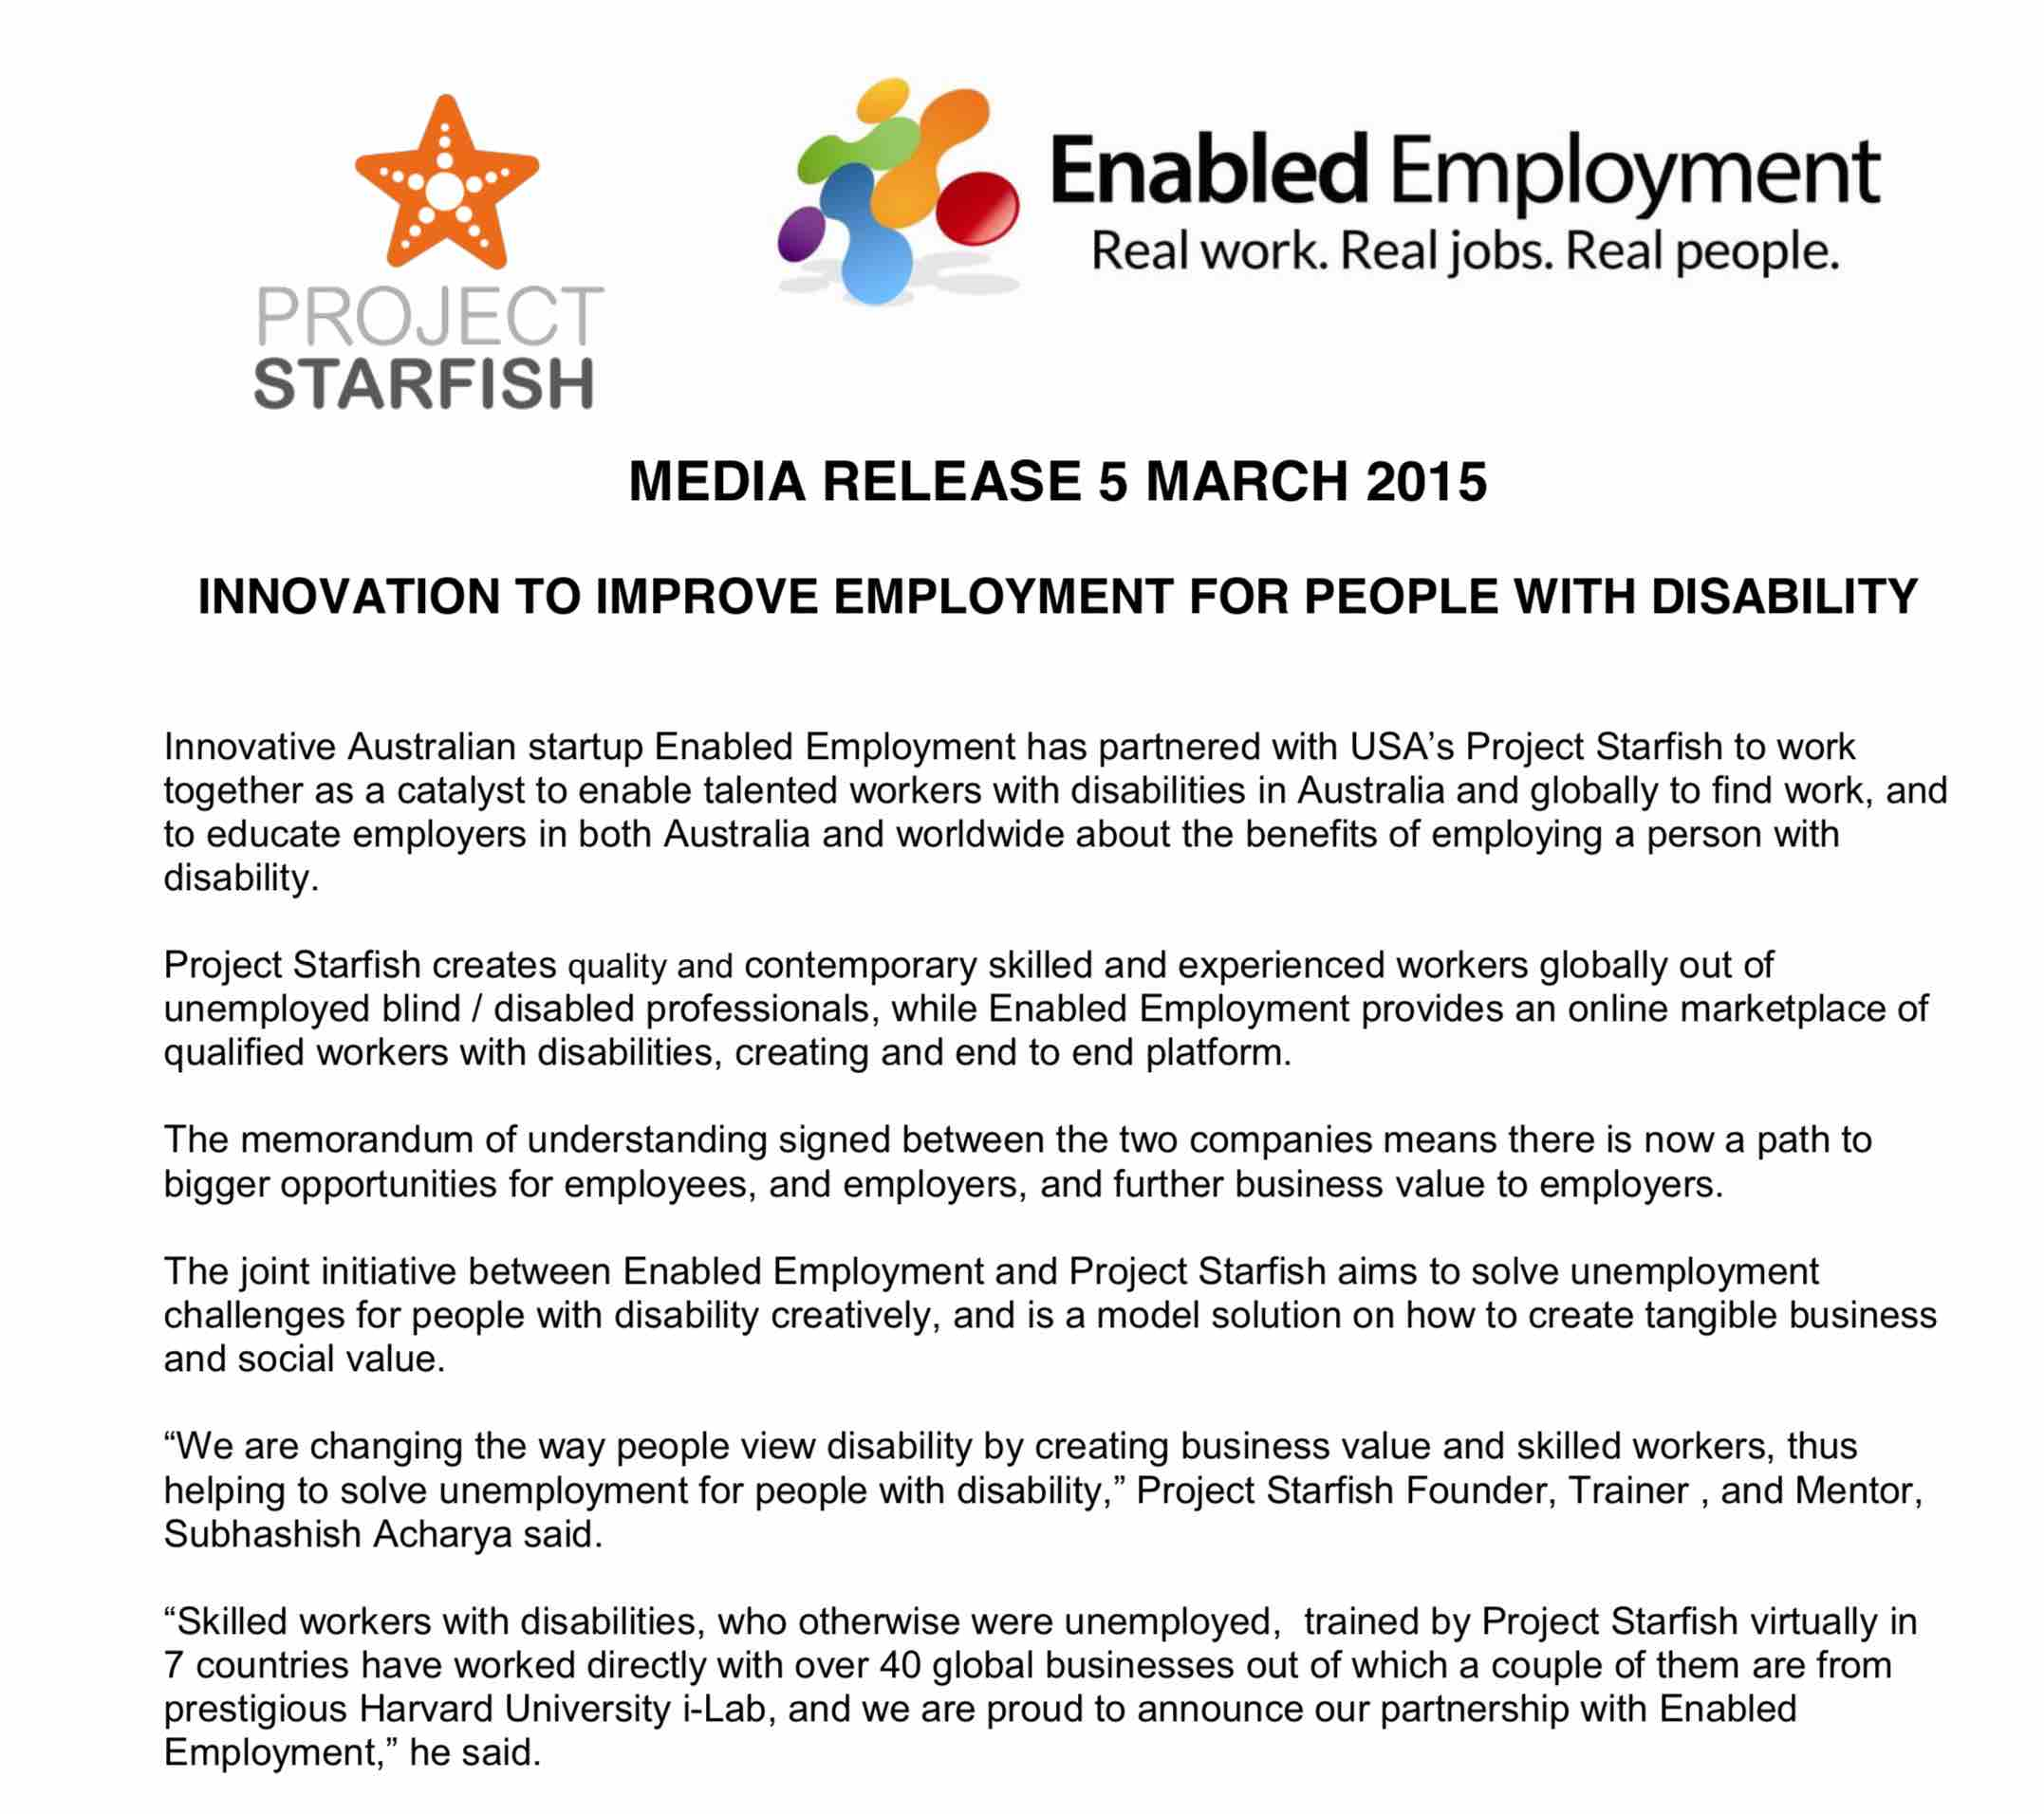 Project Starfish partners with Enabled Employment